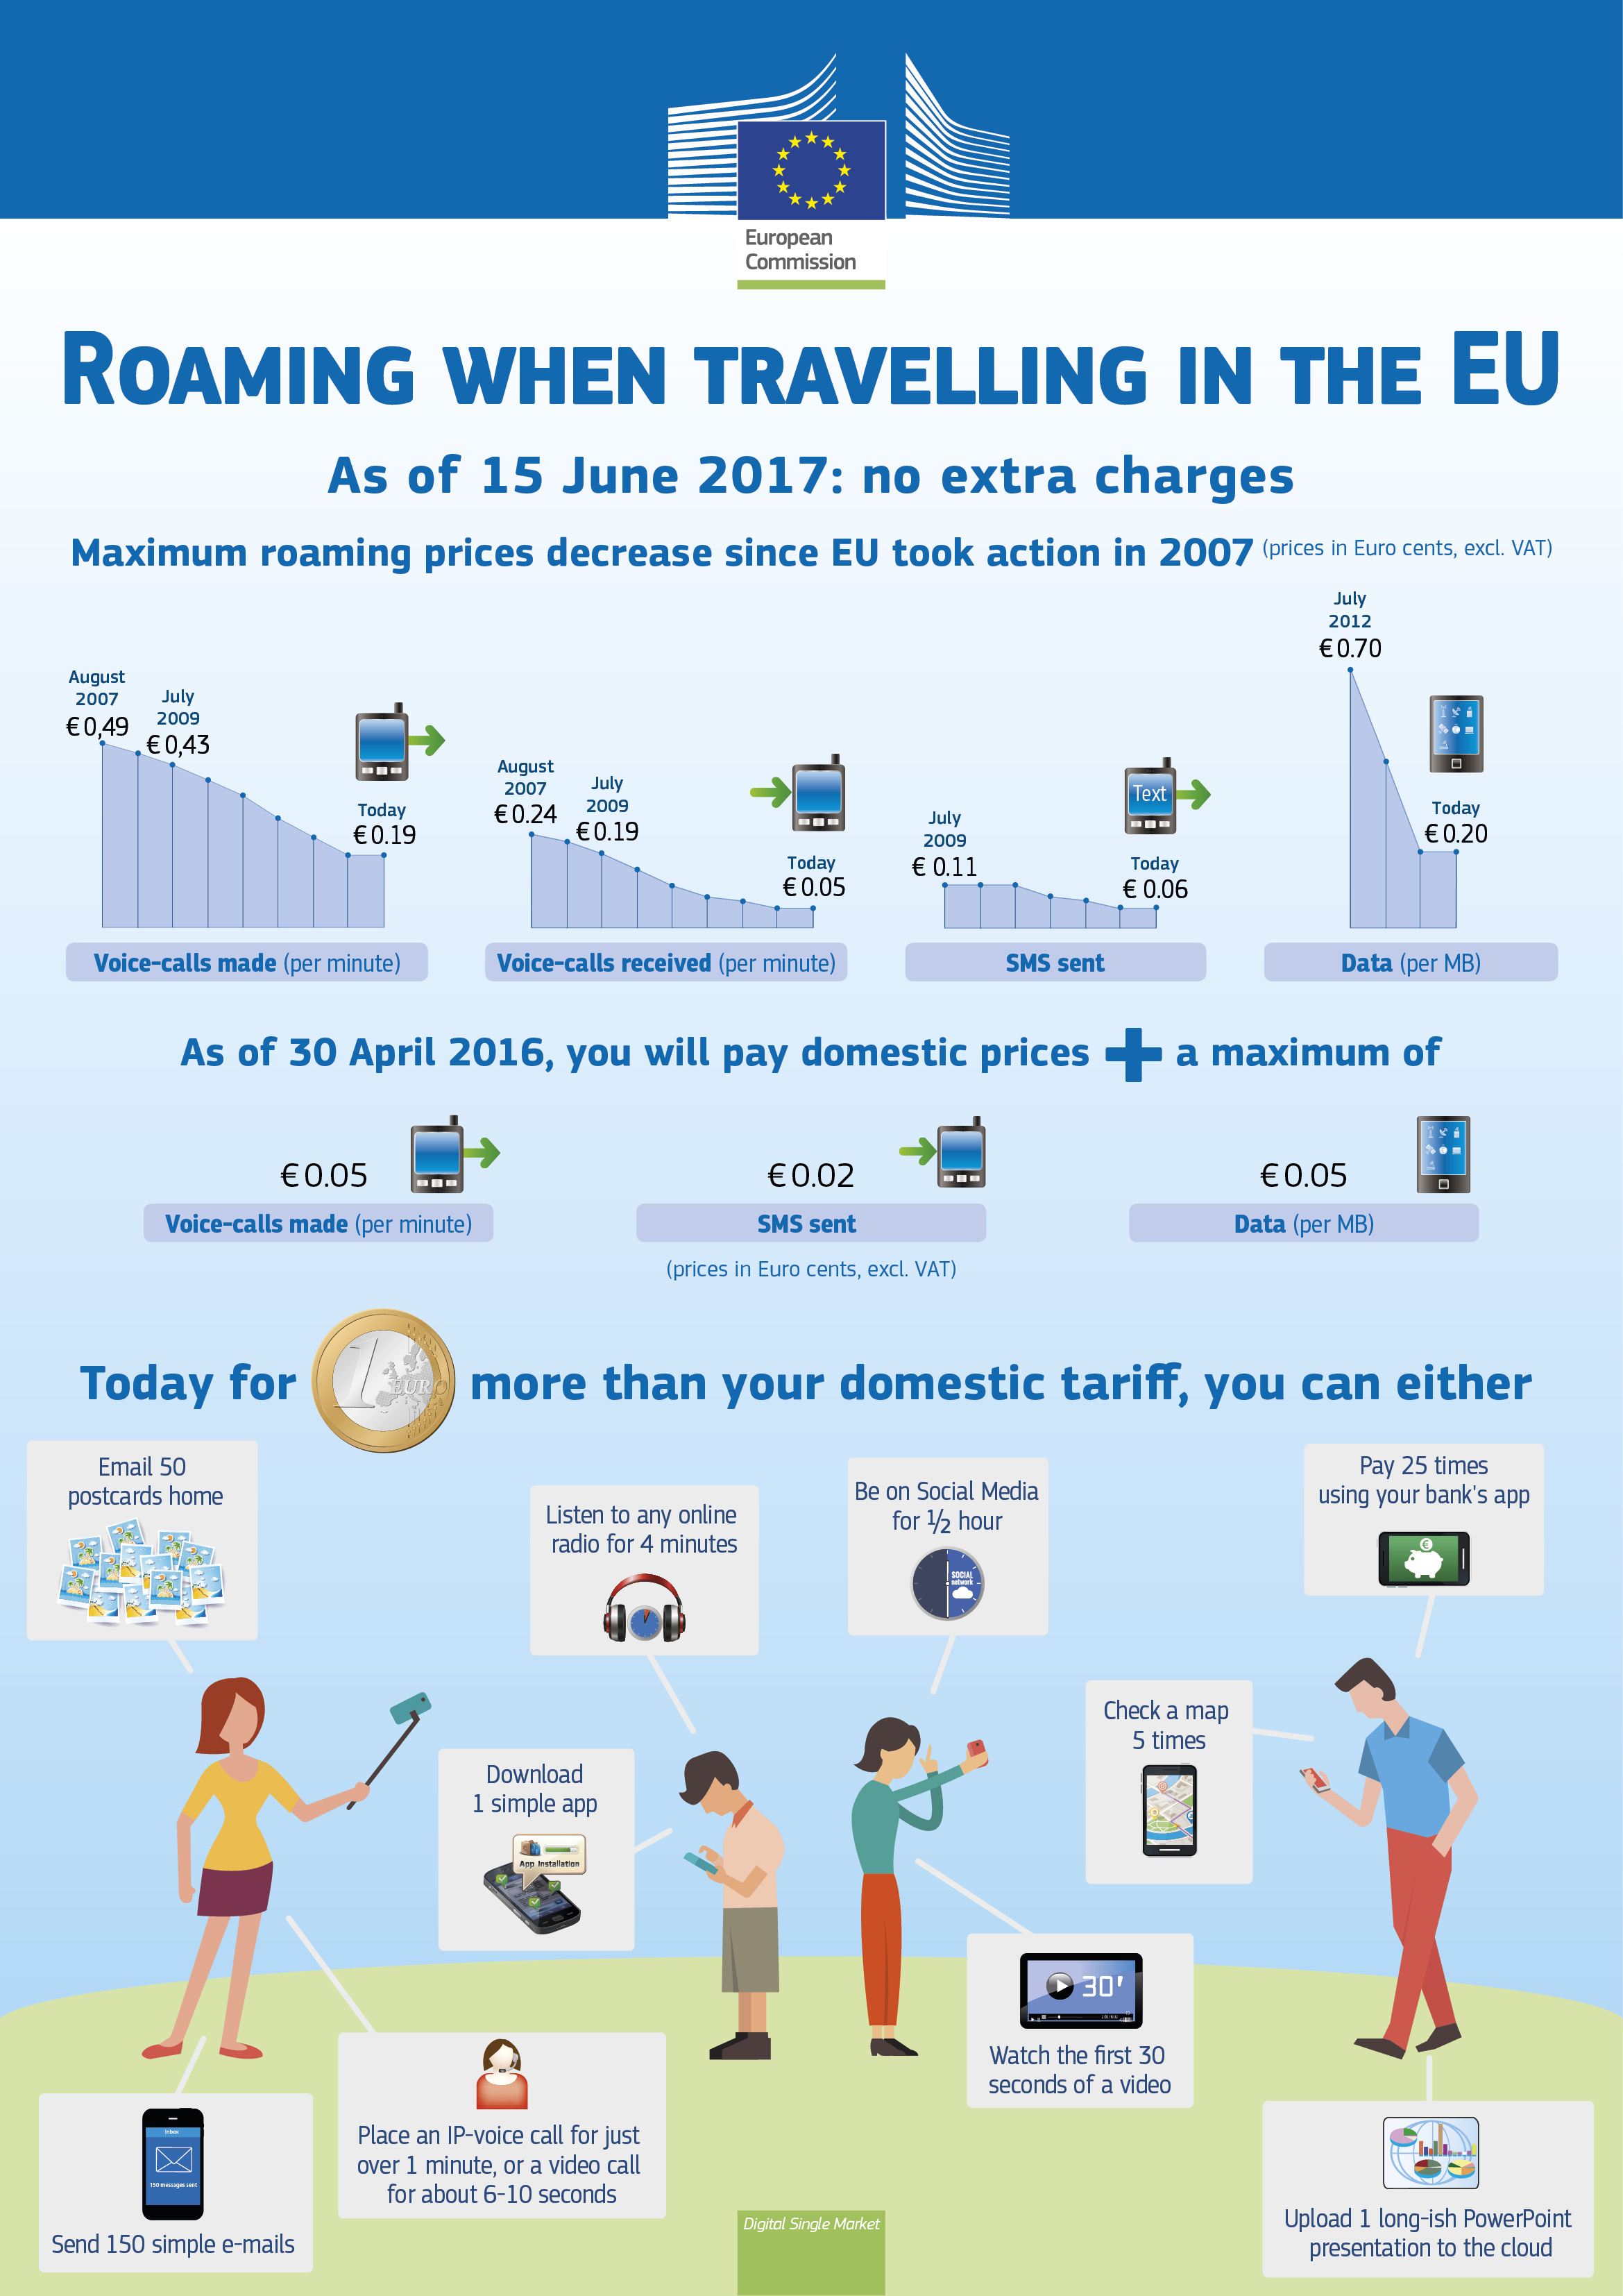 The infographic describes the roaming charges in Europe starting in 2016